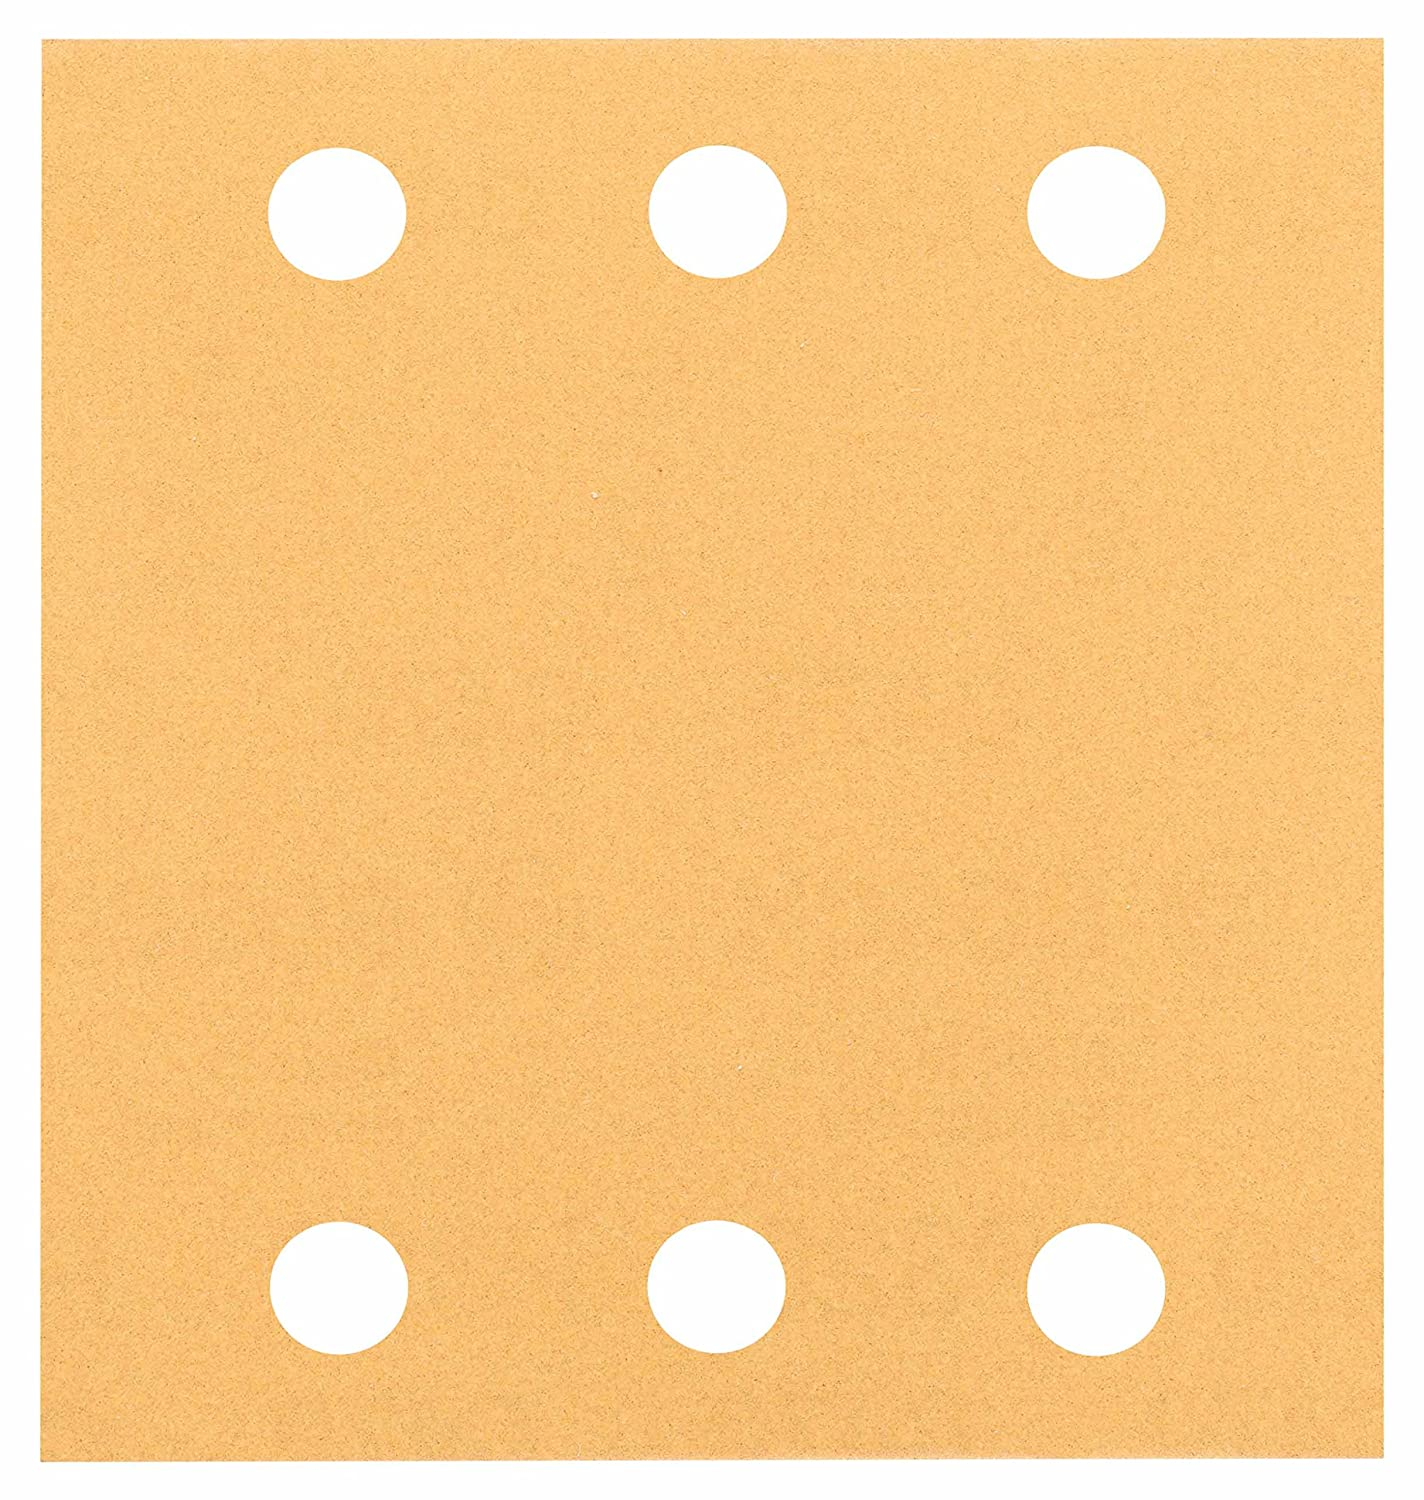 Bosch 2608607458 Sanding Sheets for Orbital Sanders, Best for Wood, 6 holes-120 grit, 115 x 107 mm